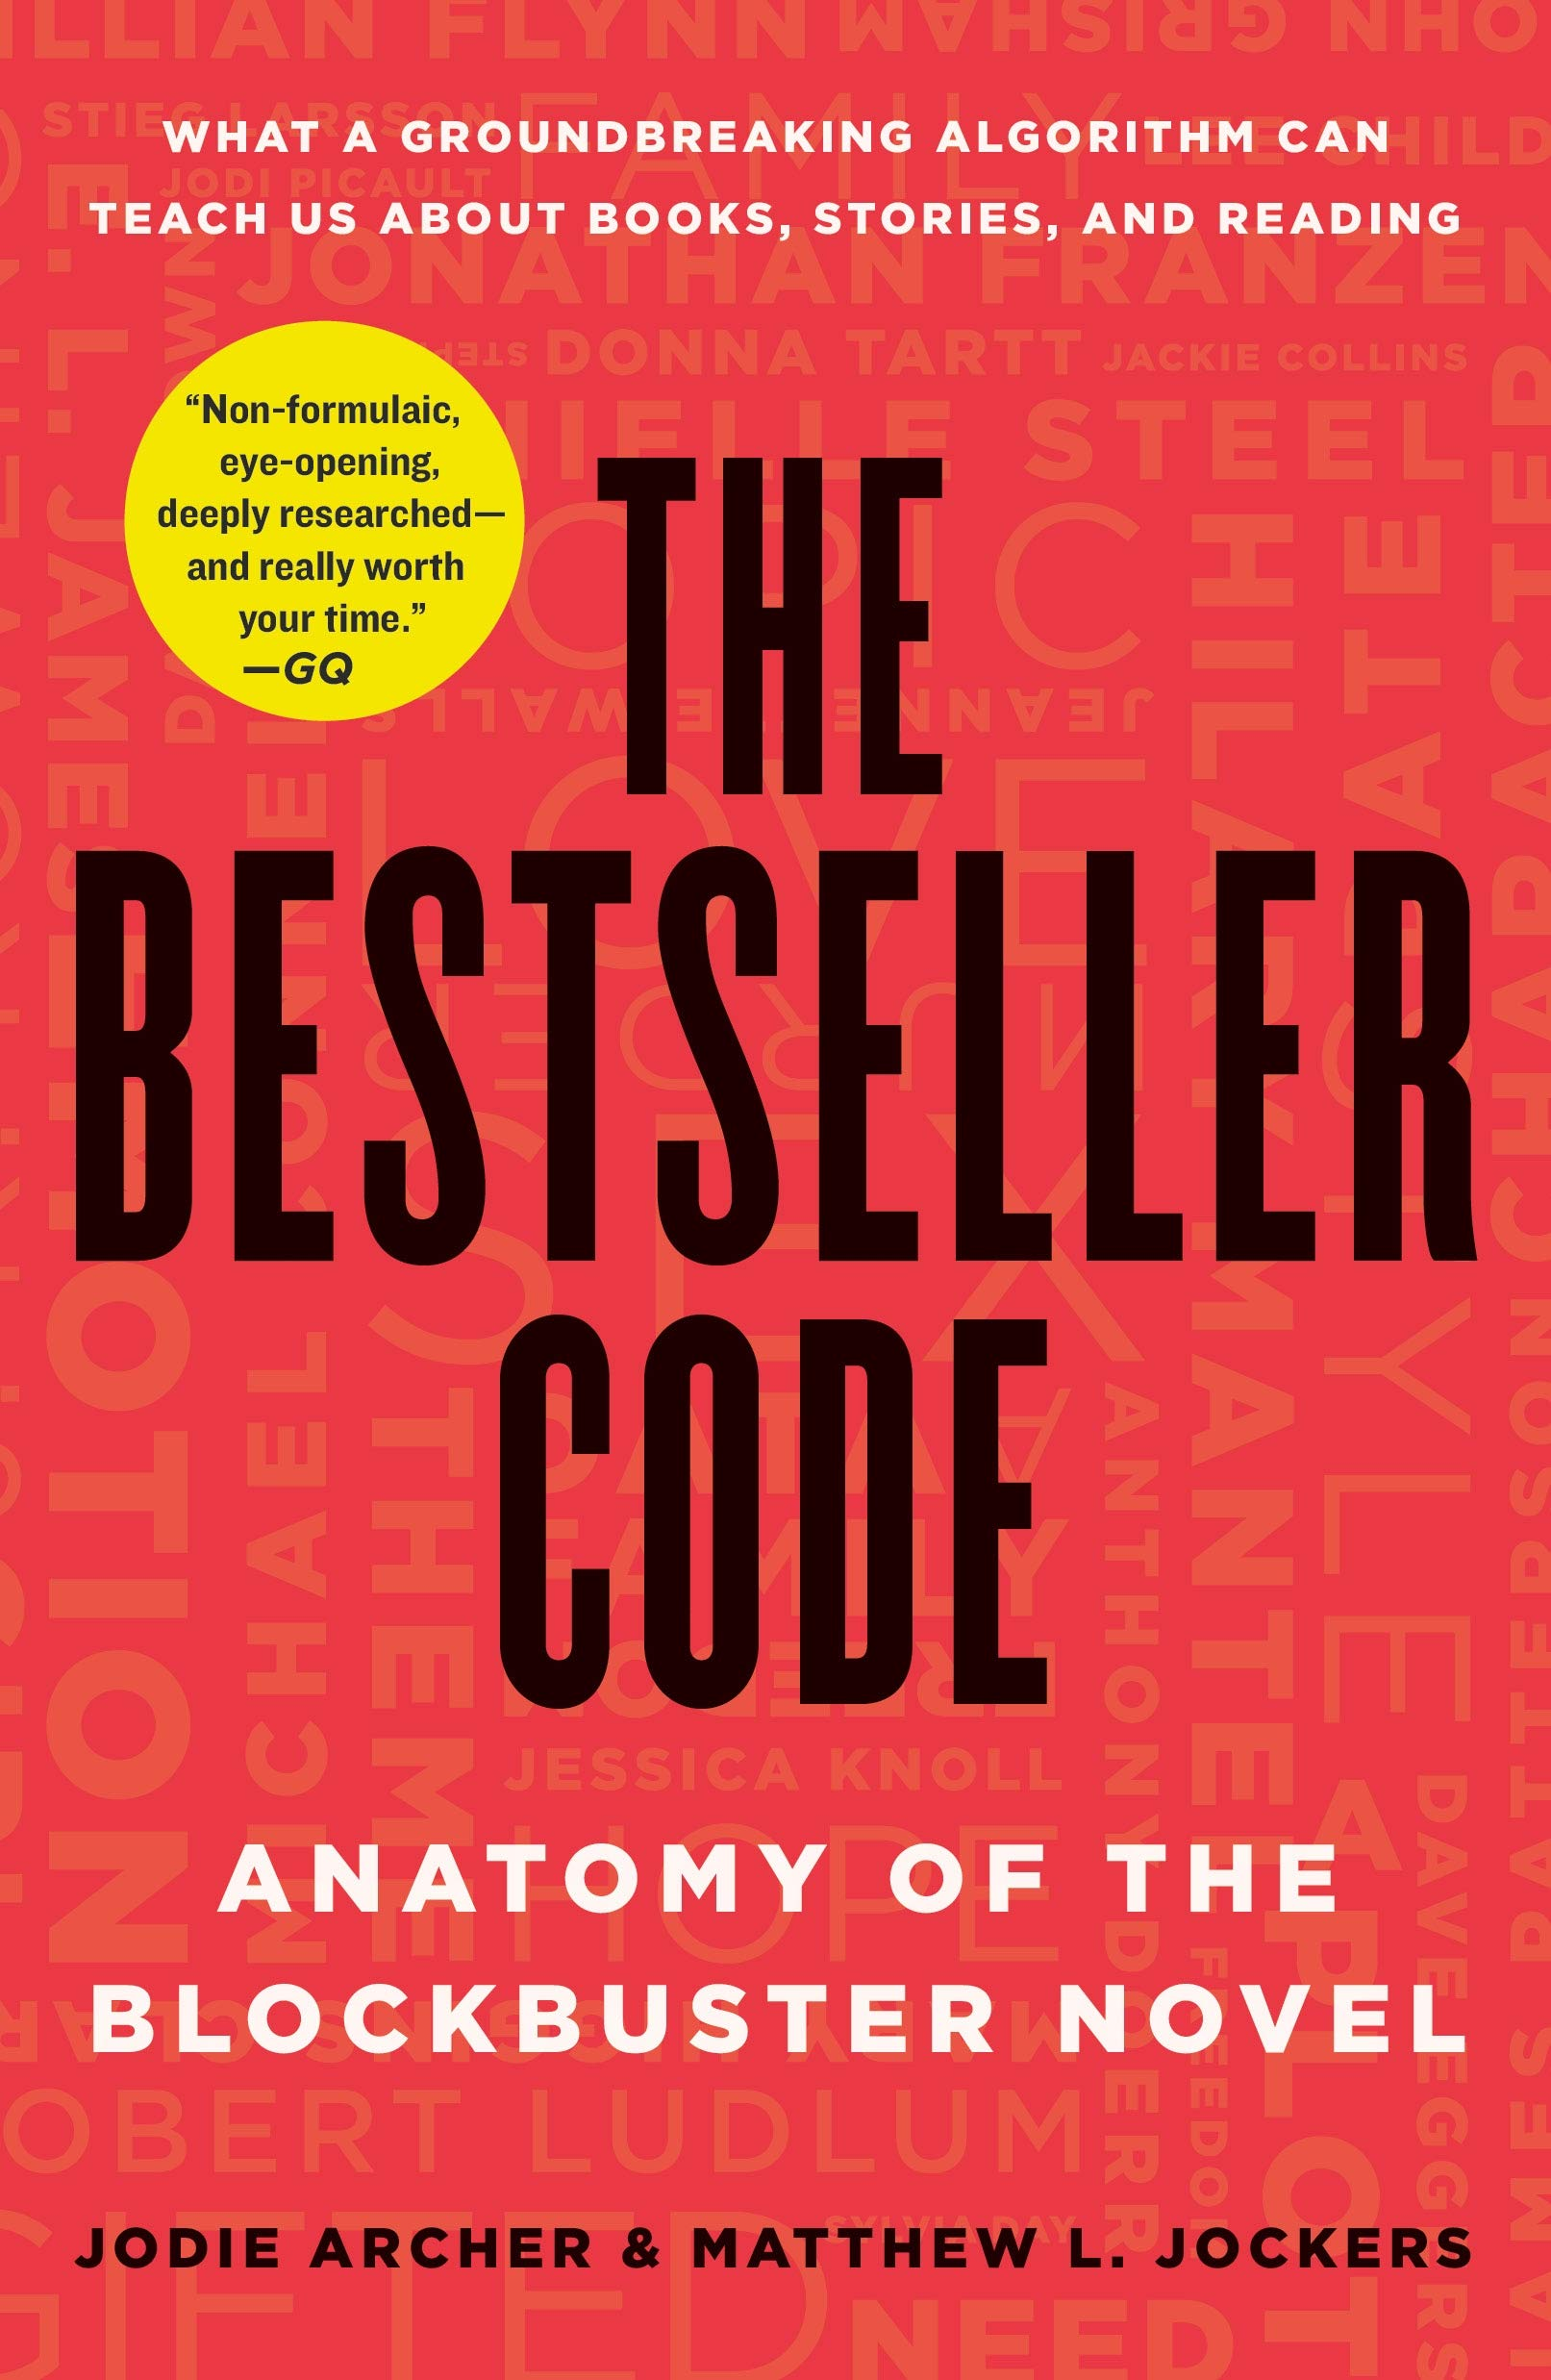 The Bestseller Code  Anatomy Of The Blockbuster Novel  English Edition